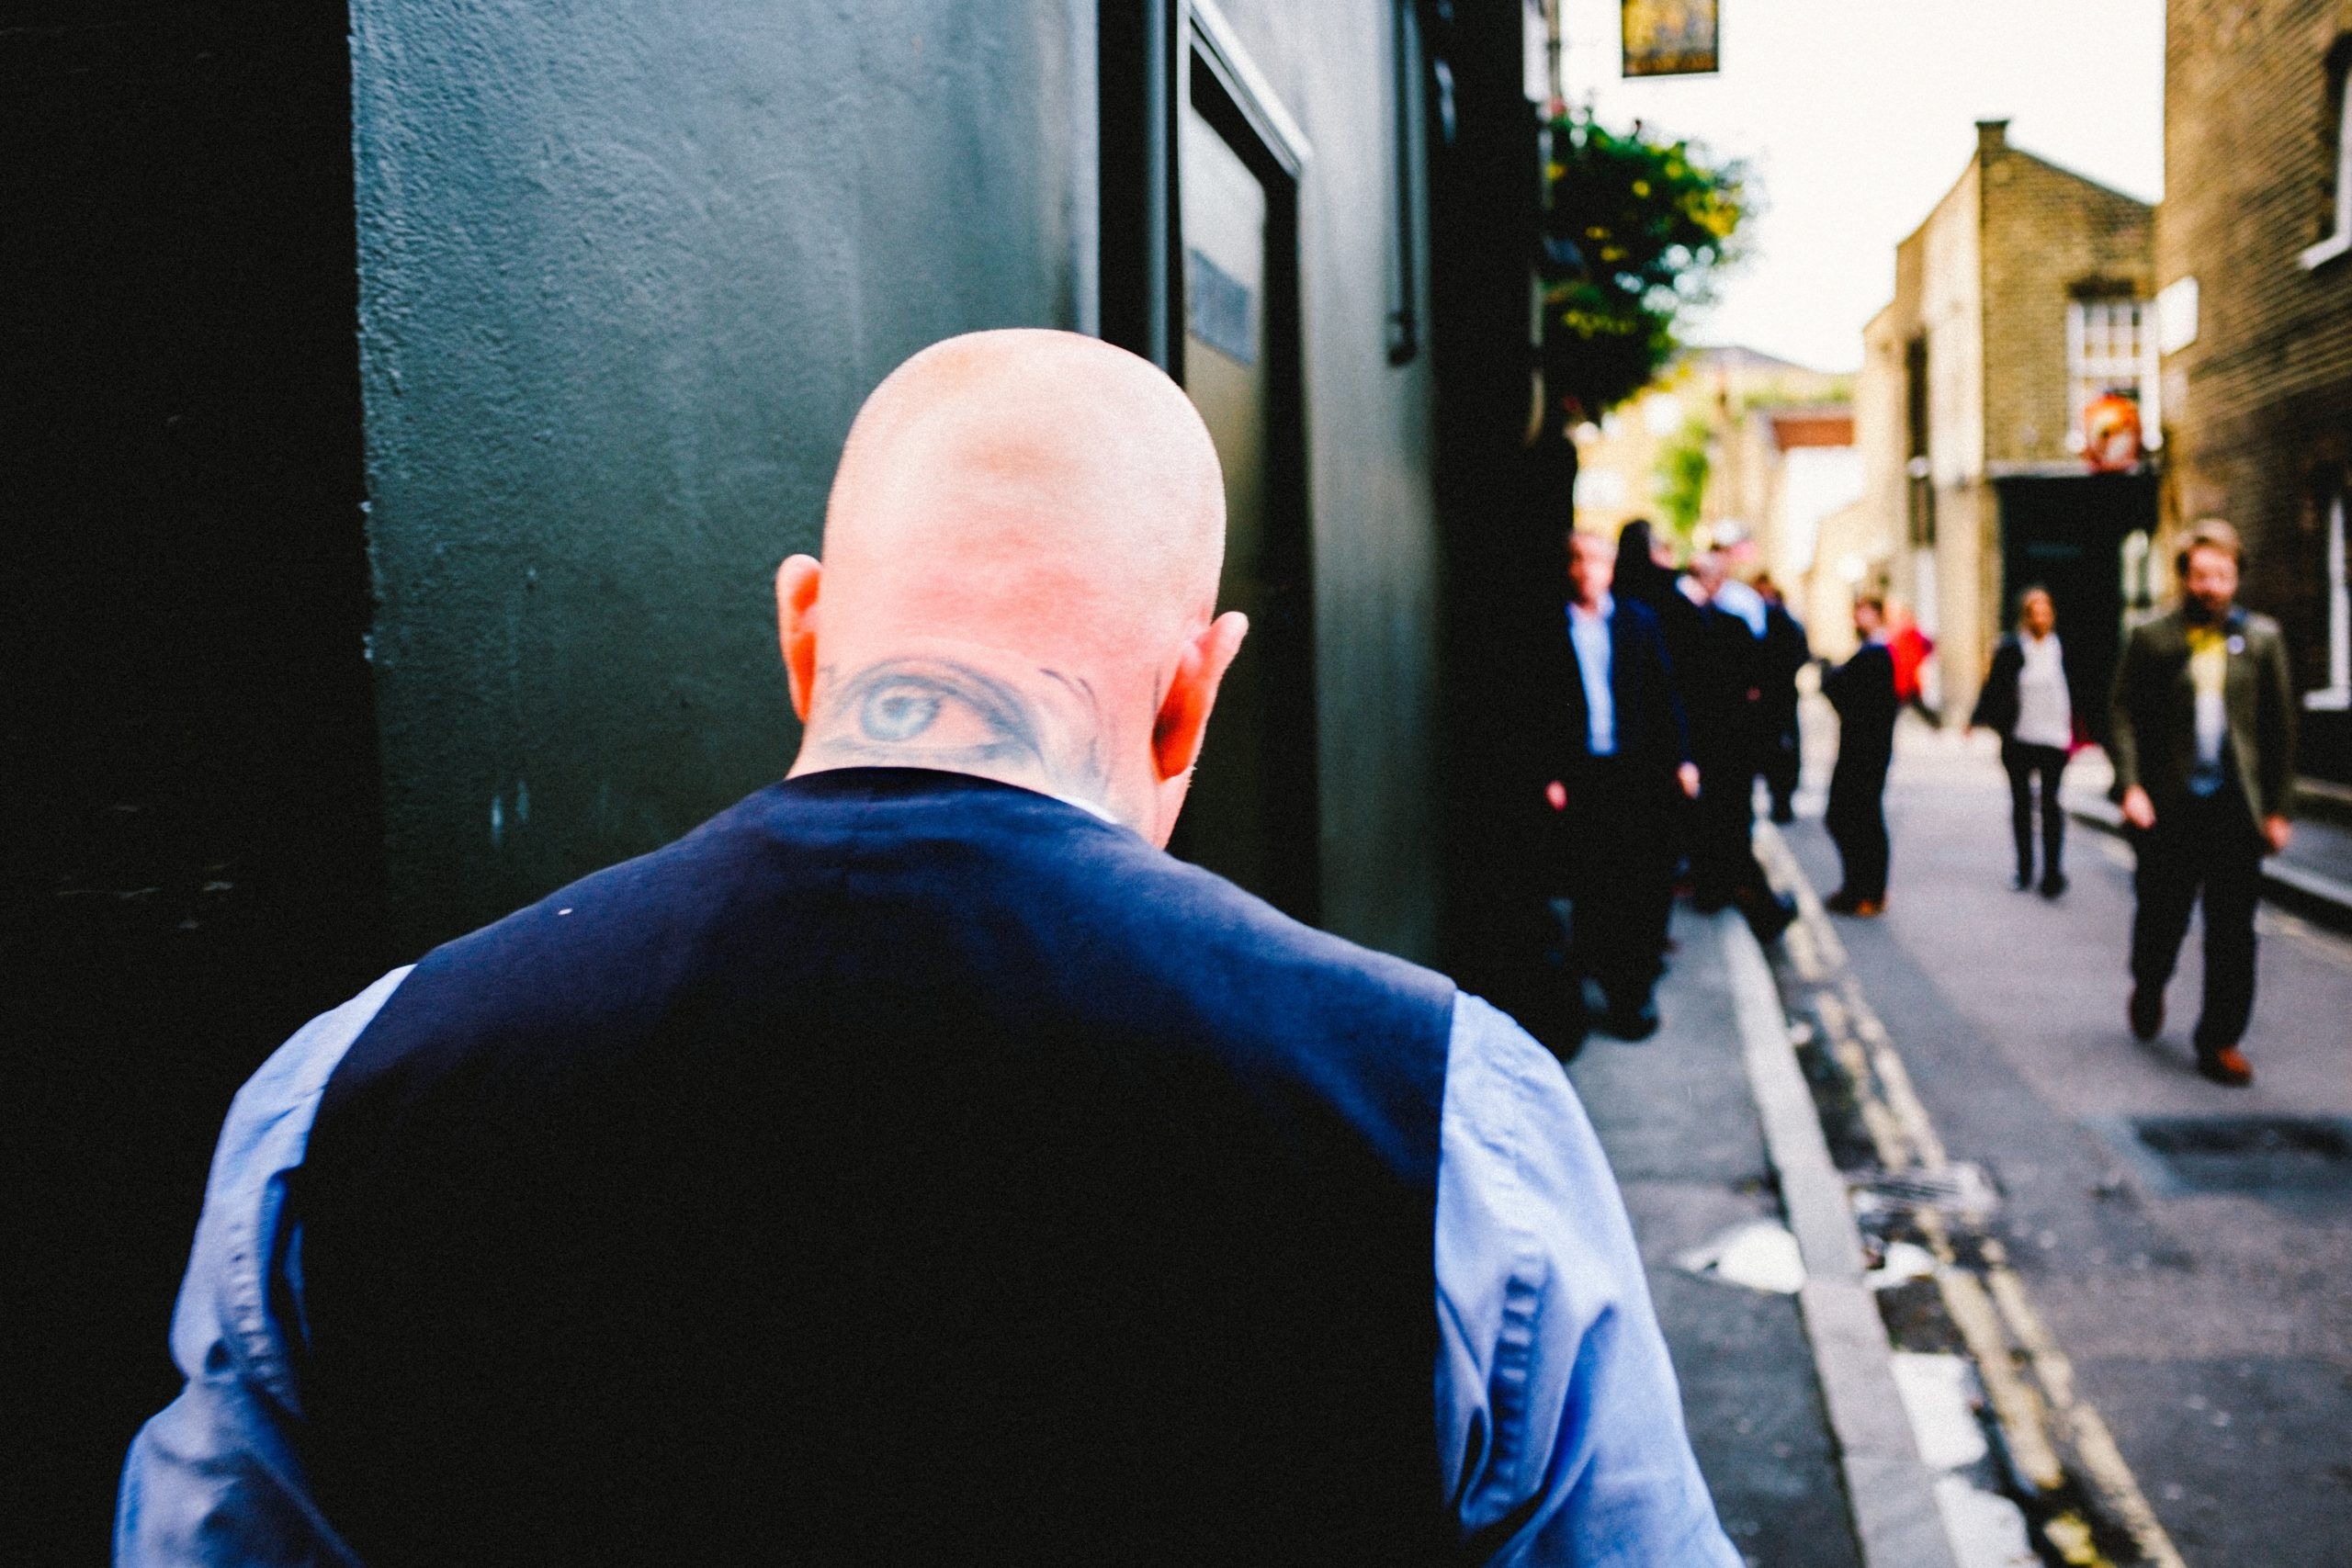 How Can A Neck Tattoo Keep You Out Of Trouble